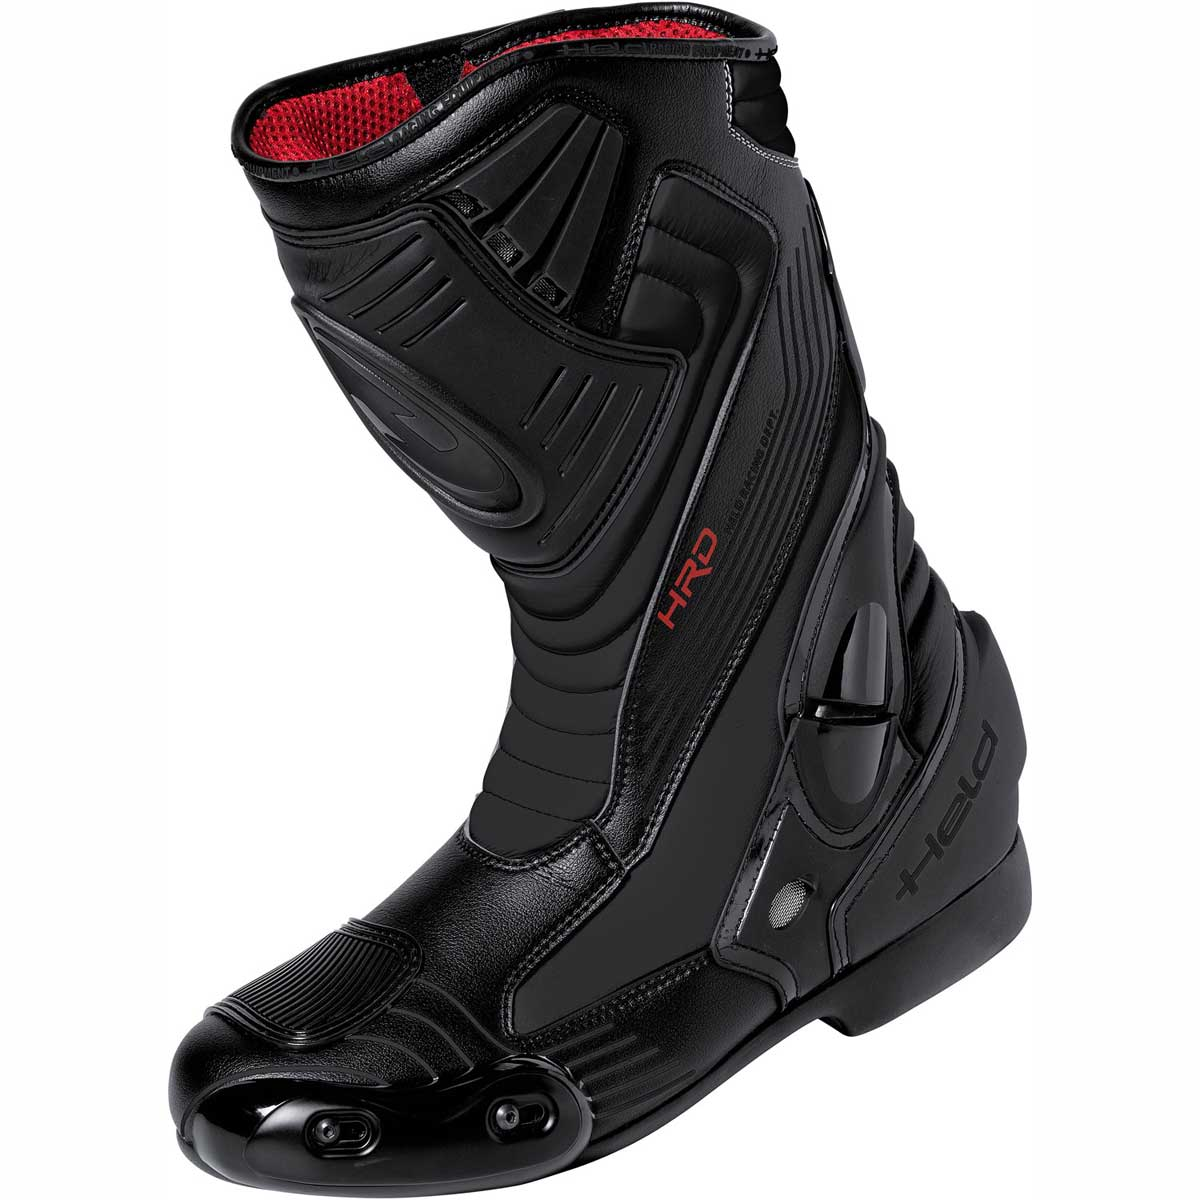 Best summer motorcycle boots | Visordown